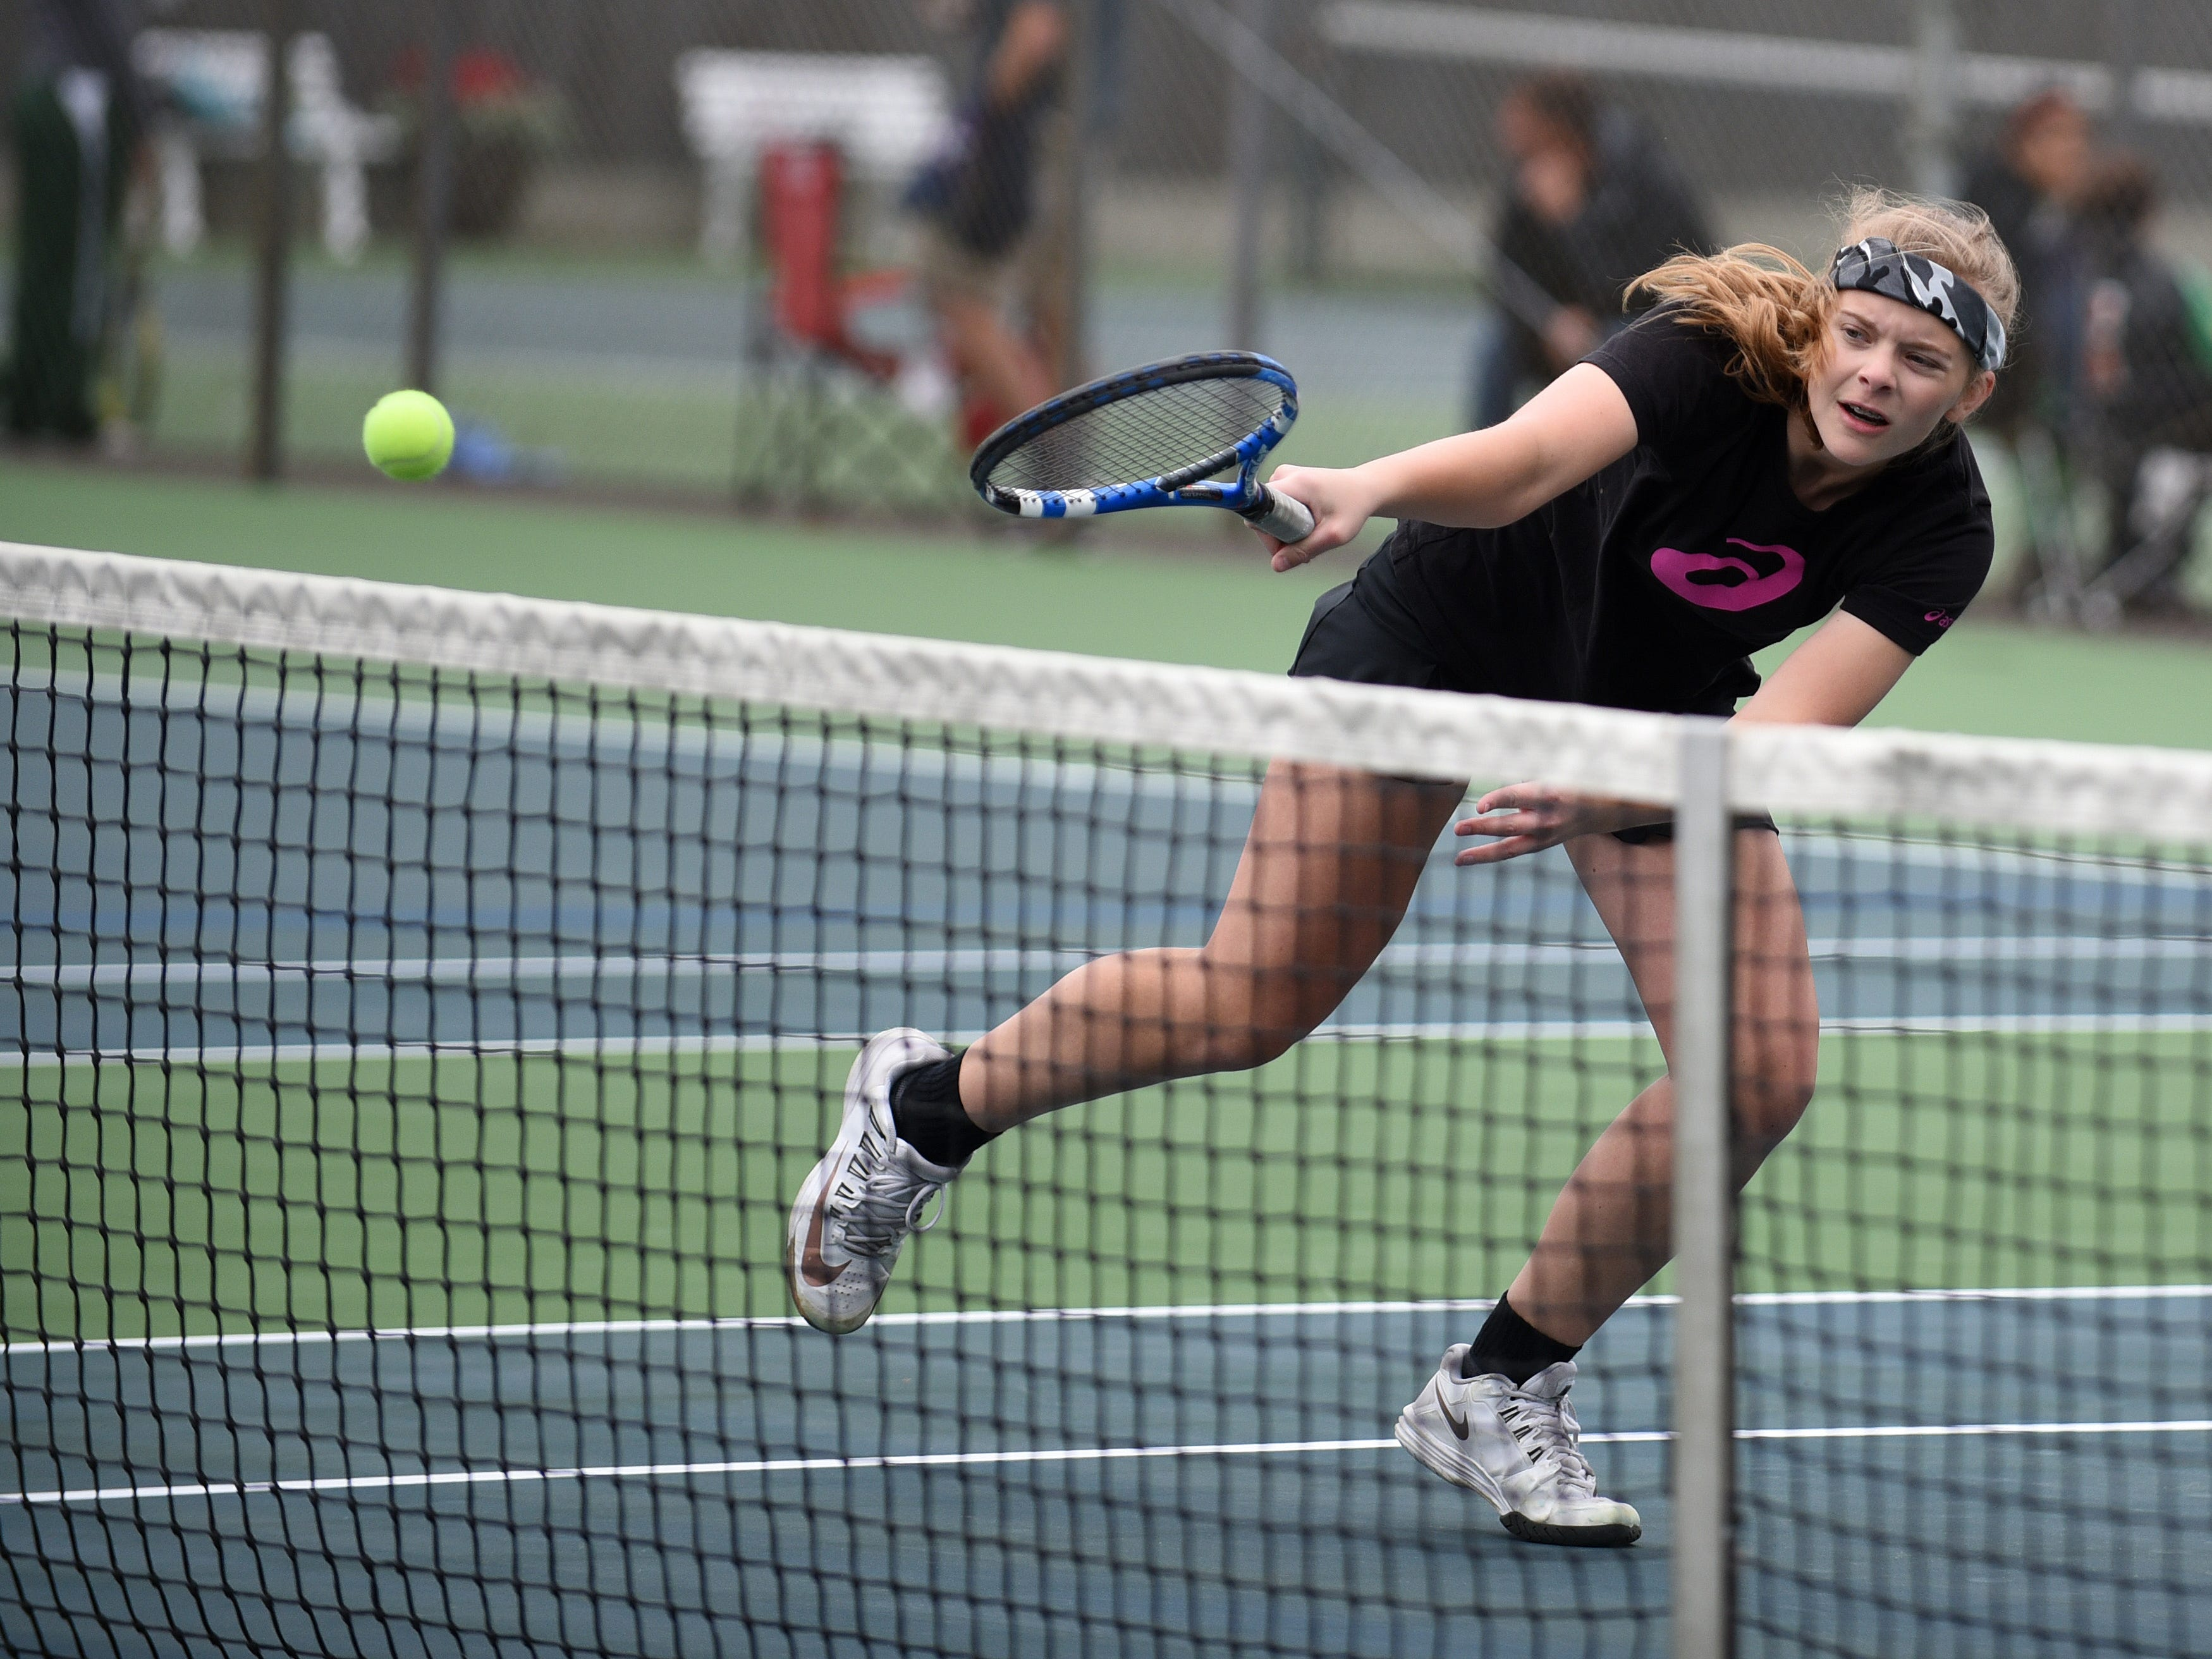 McNary's Hannah Childress plays in a doubles match during the second day of the Greater Valley Conference tennis meet on Friday, May 15, 2015, at Salem Tennis and Swim Club.